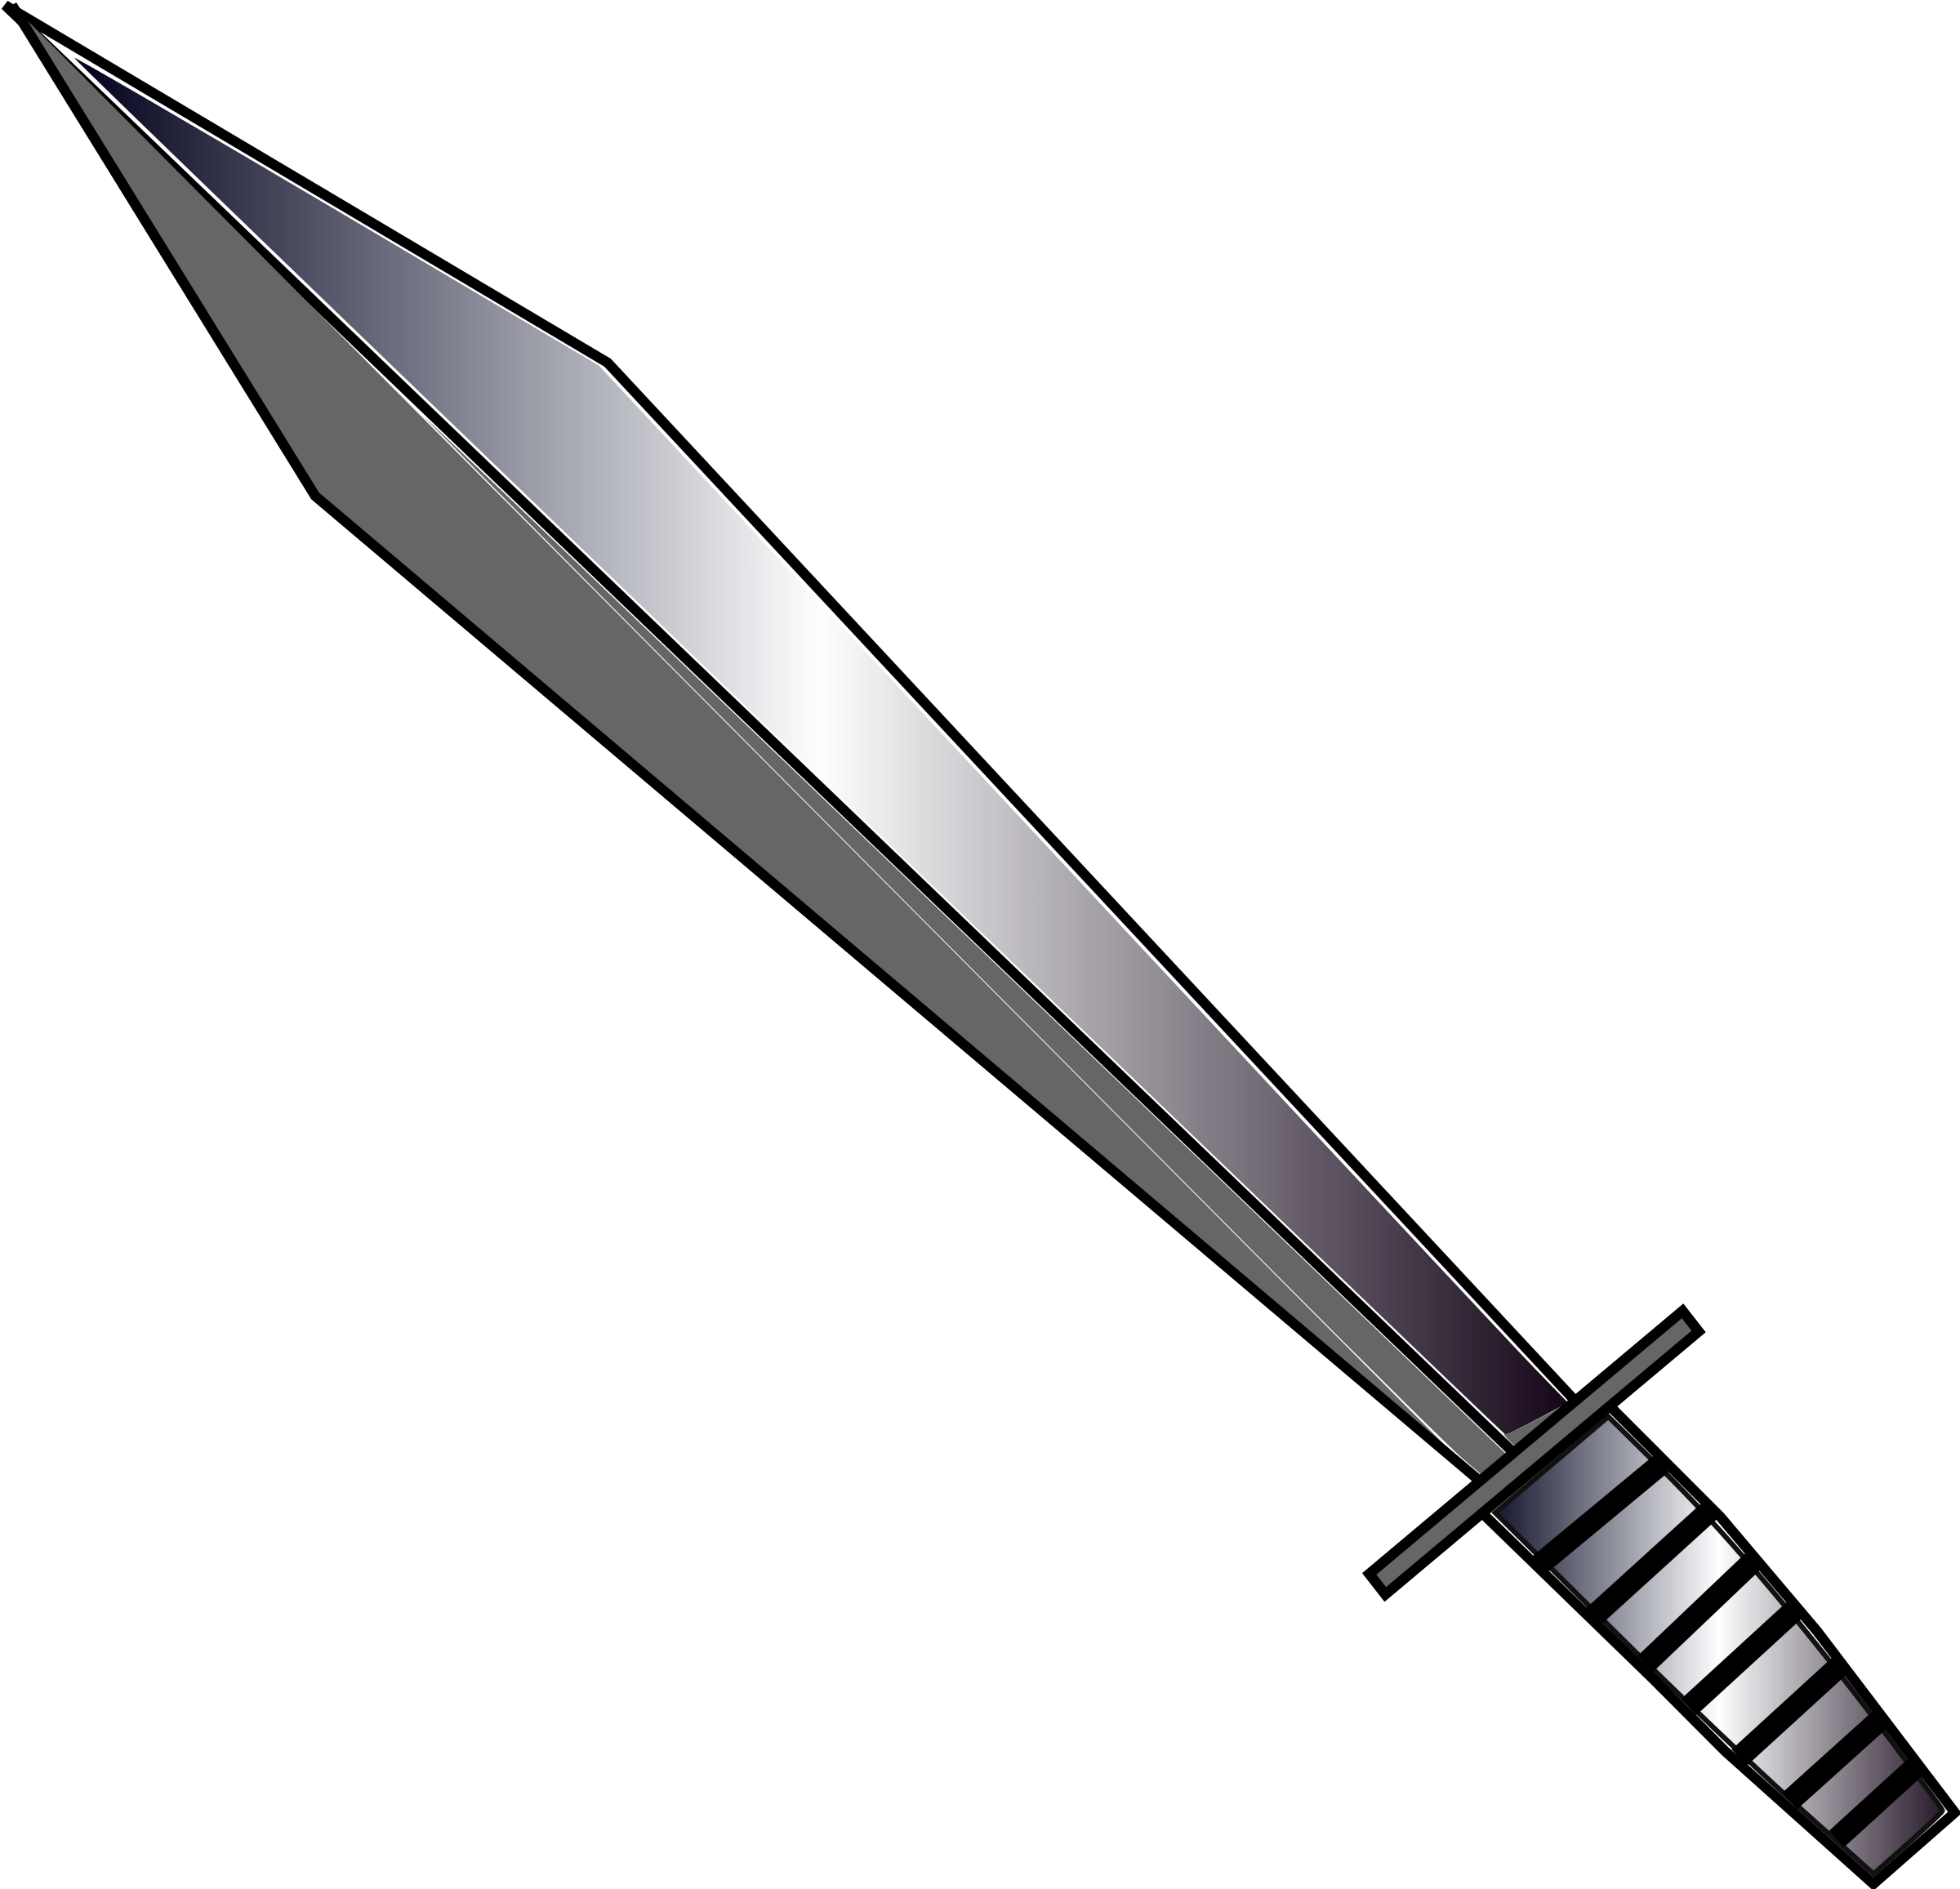 sword by nello